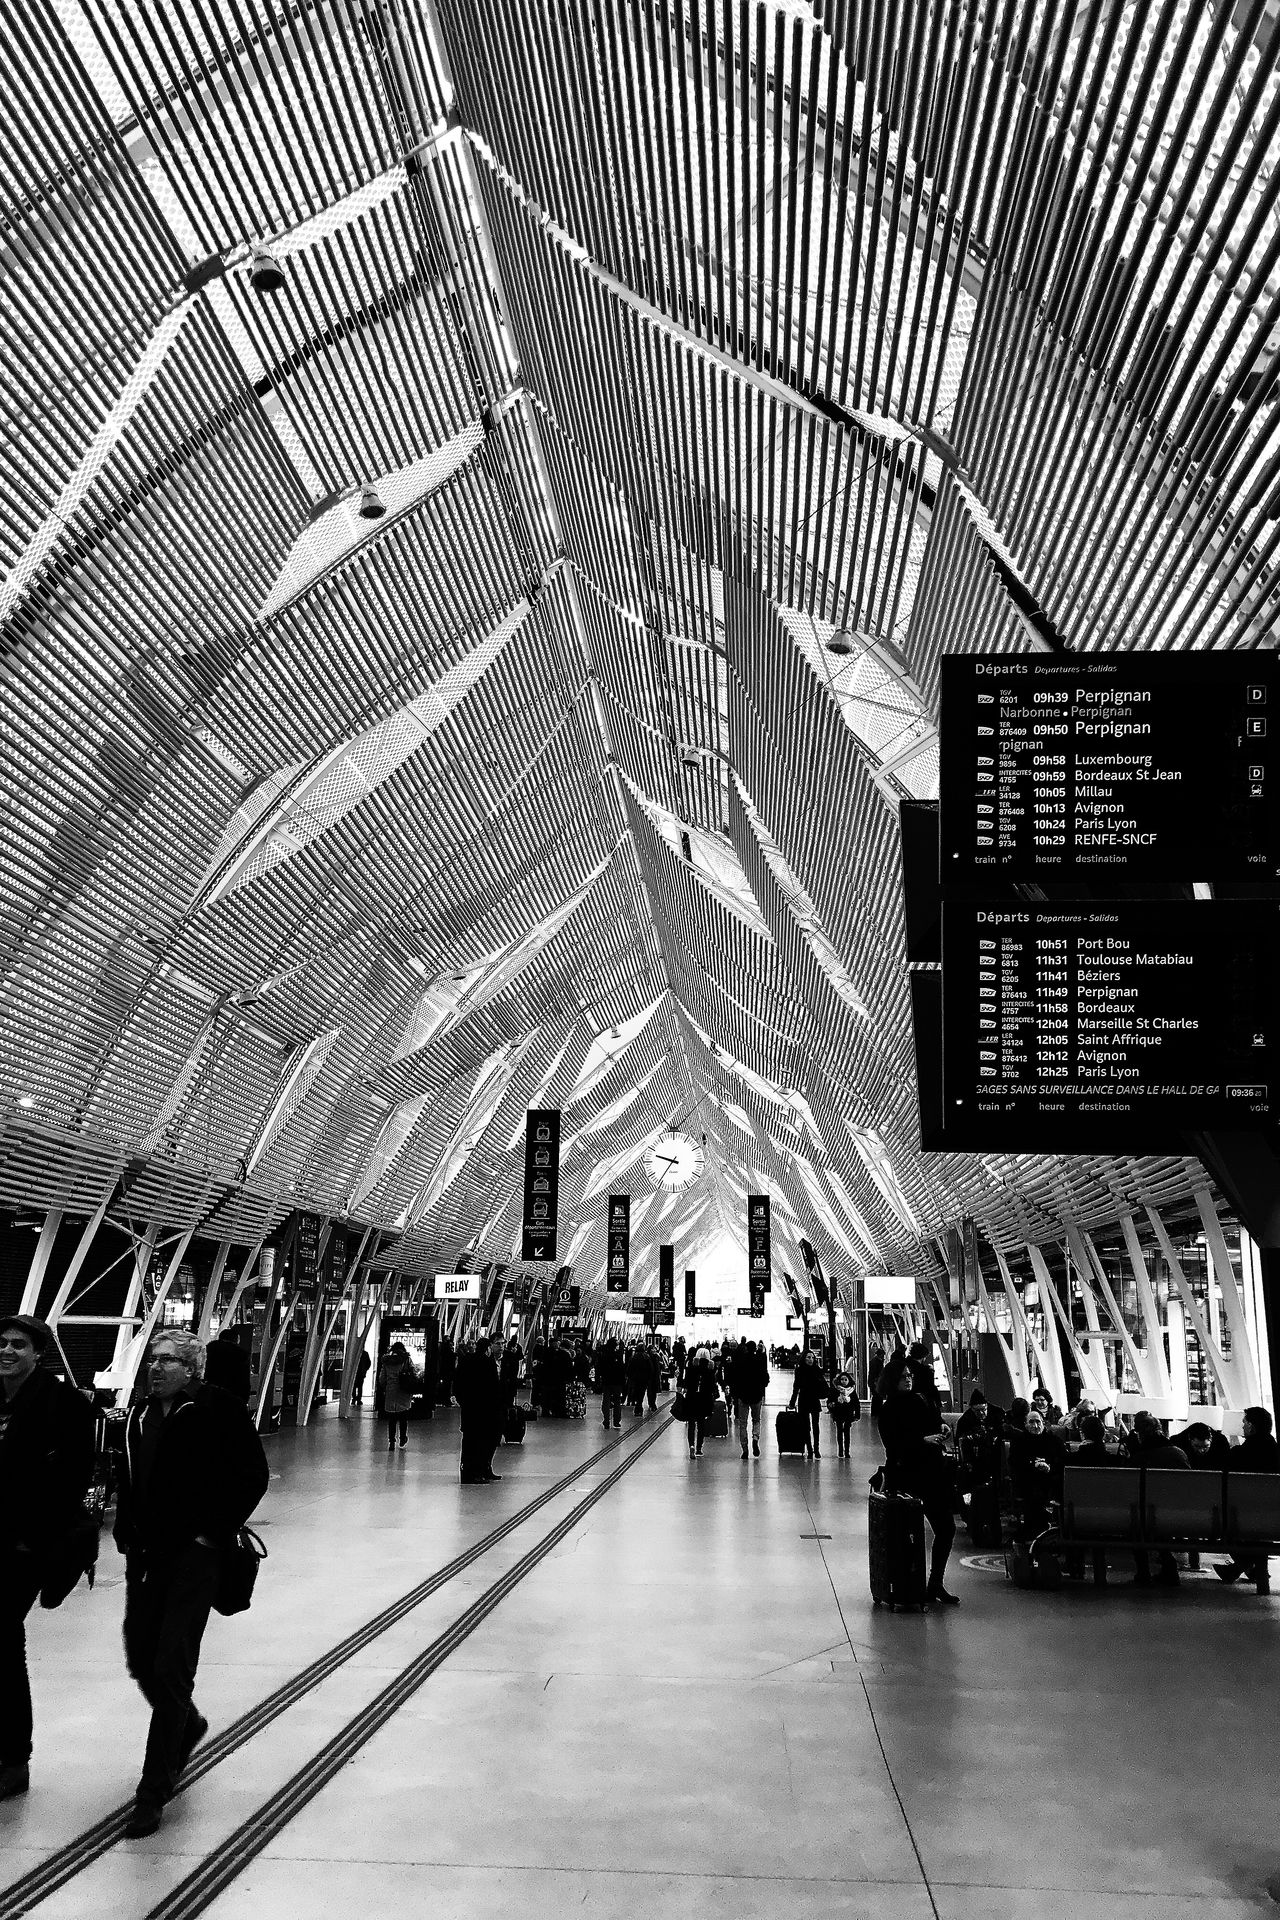 Gare saint roch Transportation Travel Large Group Of People Architecture Built Structure Indoors  City Life Illuminated Public Transportation City Men Commuter Day Crowd People